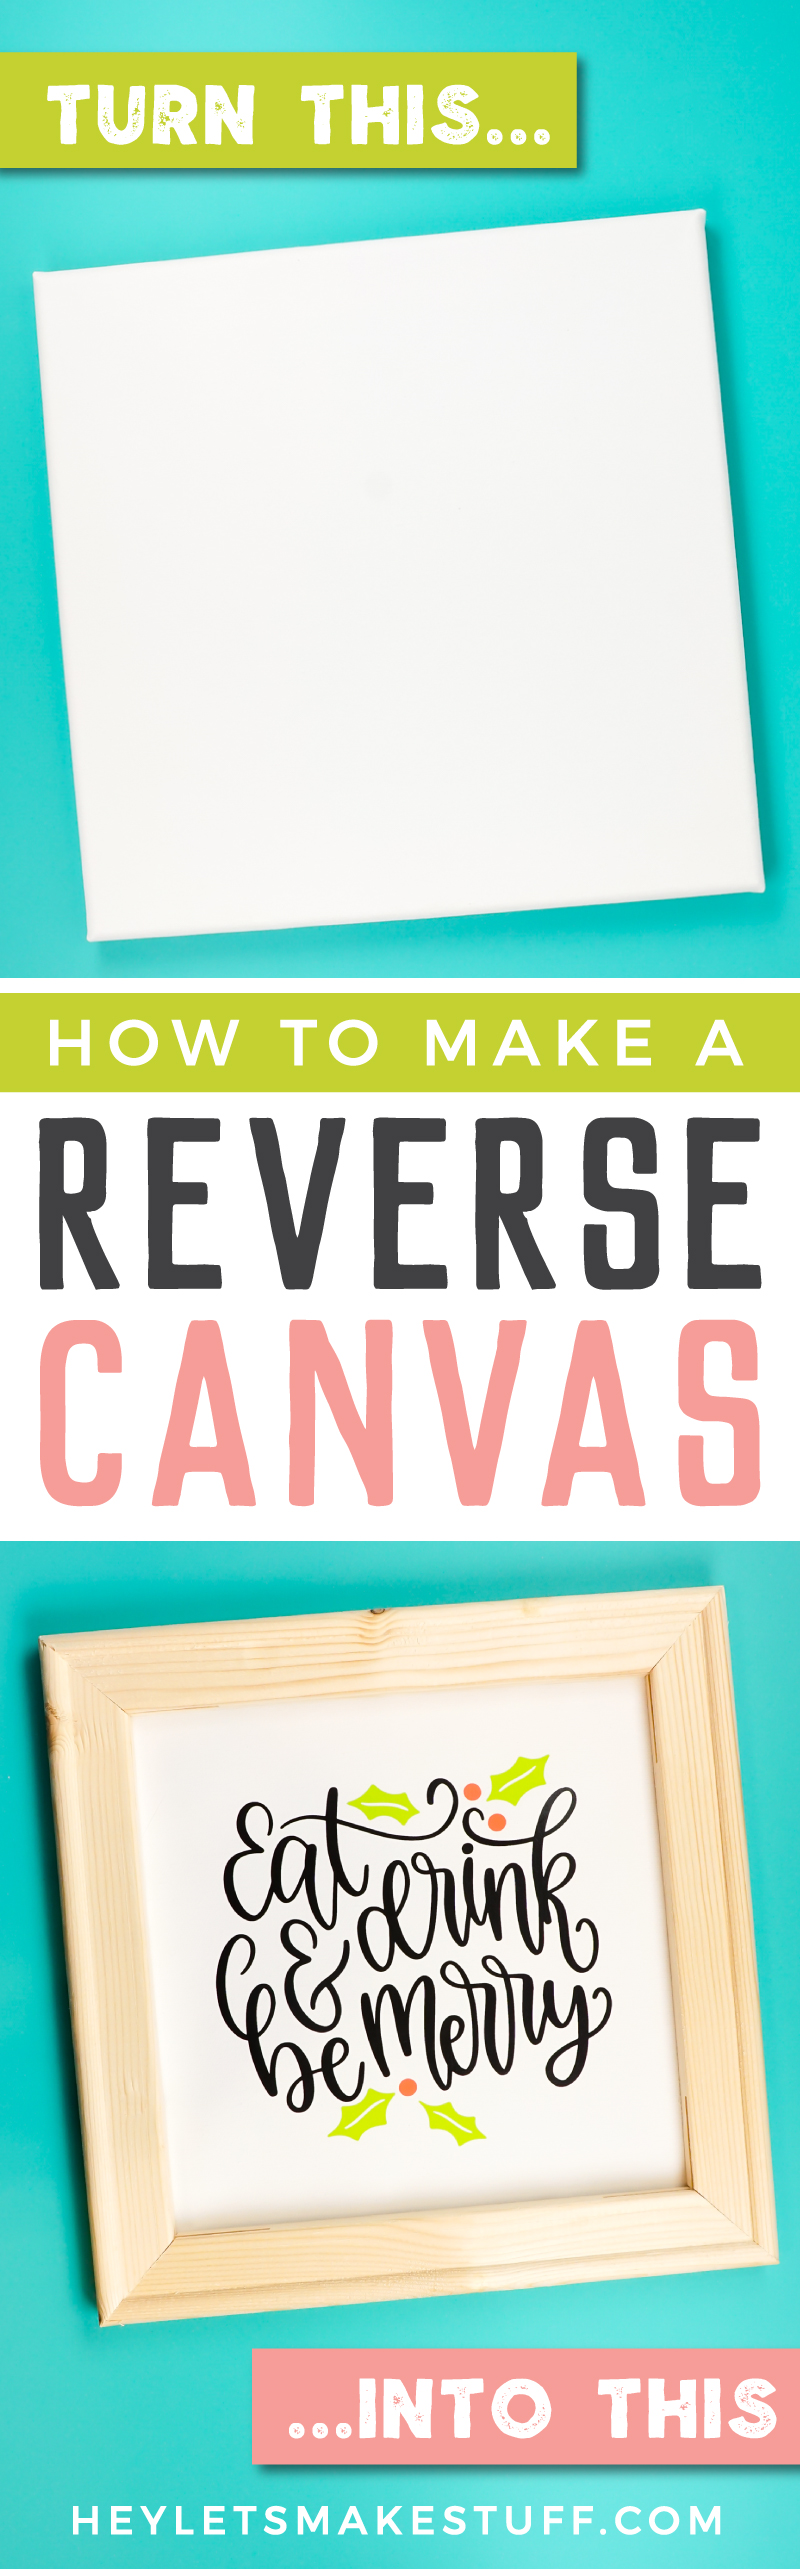 Framing art can be so expensive, but making a reverse canvas is a quick trick with an inexpensive frame! Here's how to make one out of a wrapped canvas. via @heyletsmakestuf